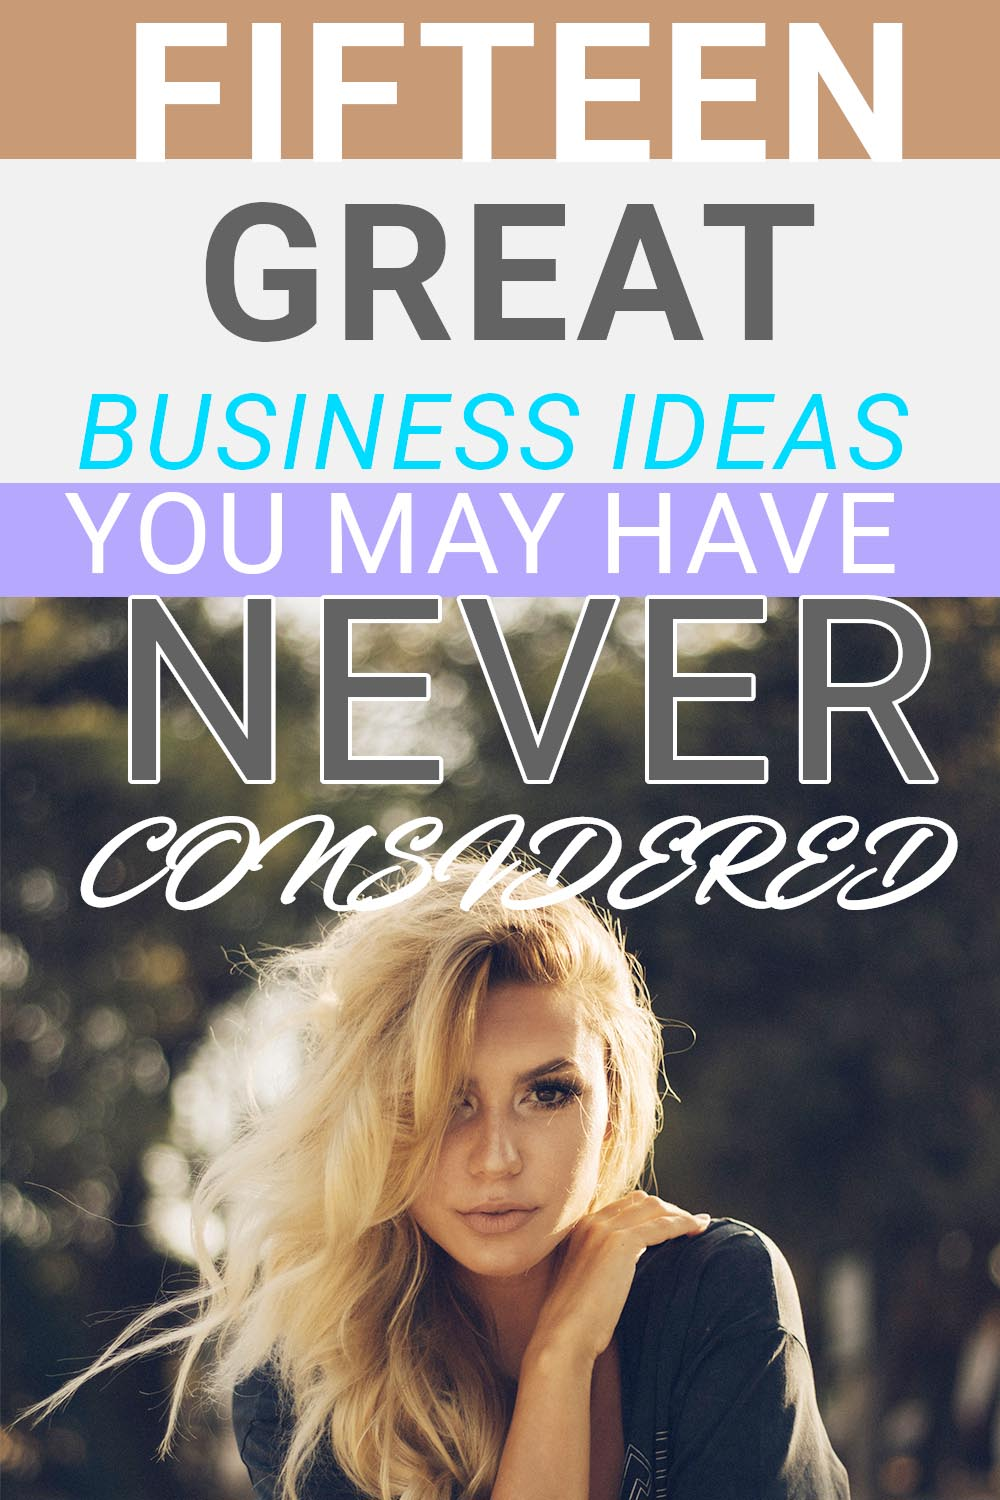 15 Great Business Ideas You May Have Never Considered